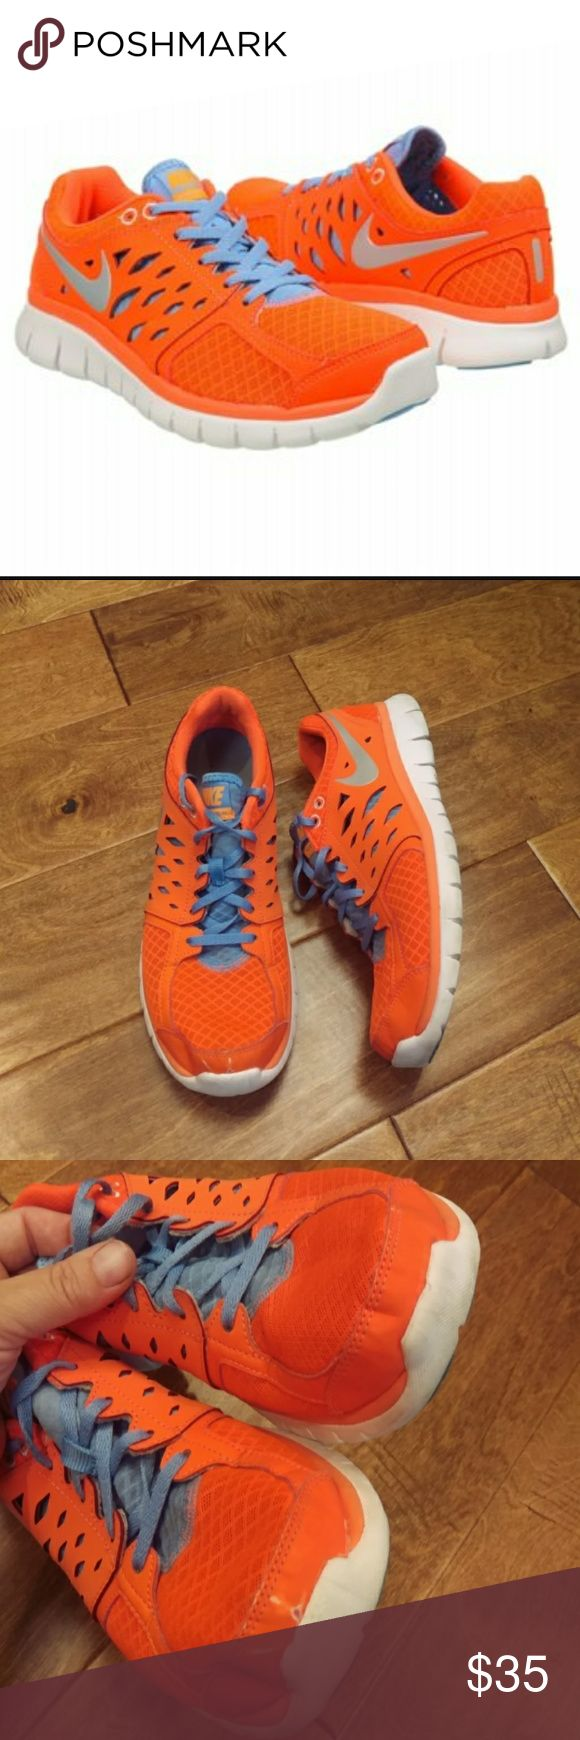 Flex 2013 Run Womens Running Shoes Pre owened in good shape(has few flaws see pictures for details). Size 9. Nike Shoes Athletic Shoes